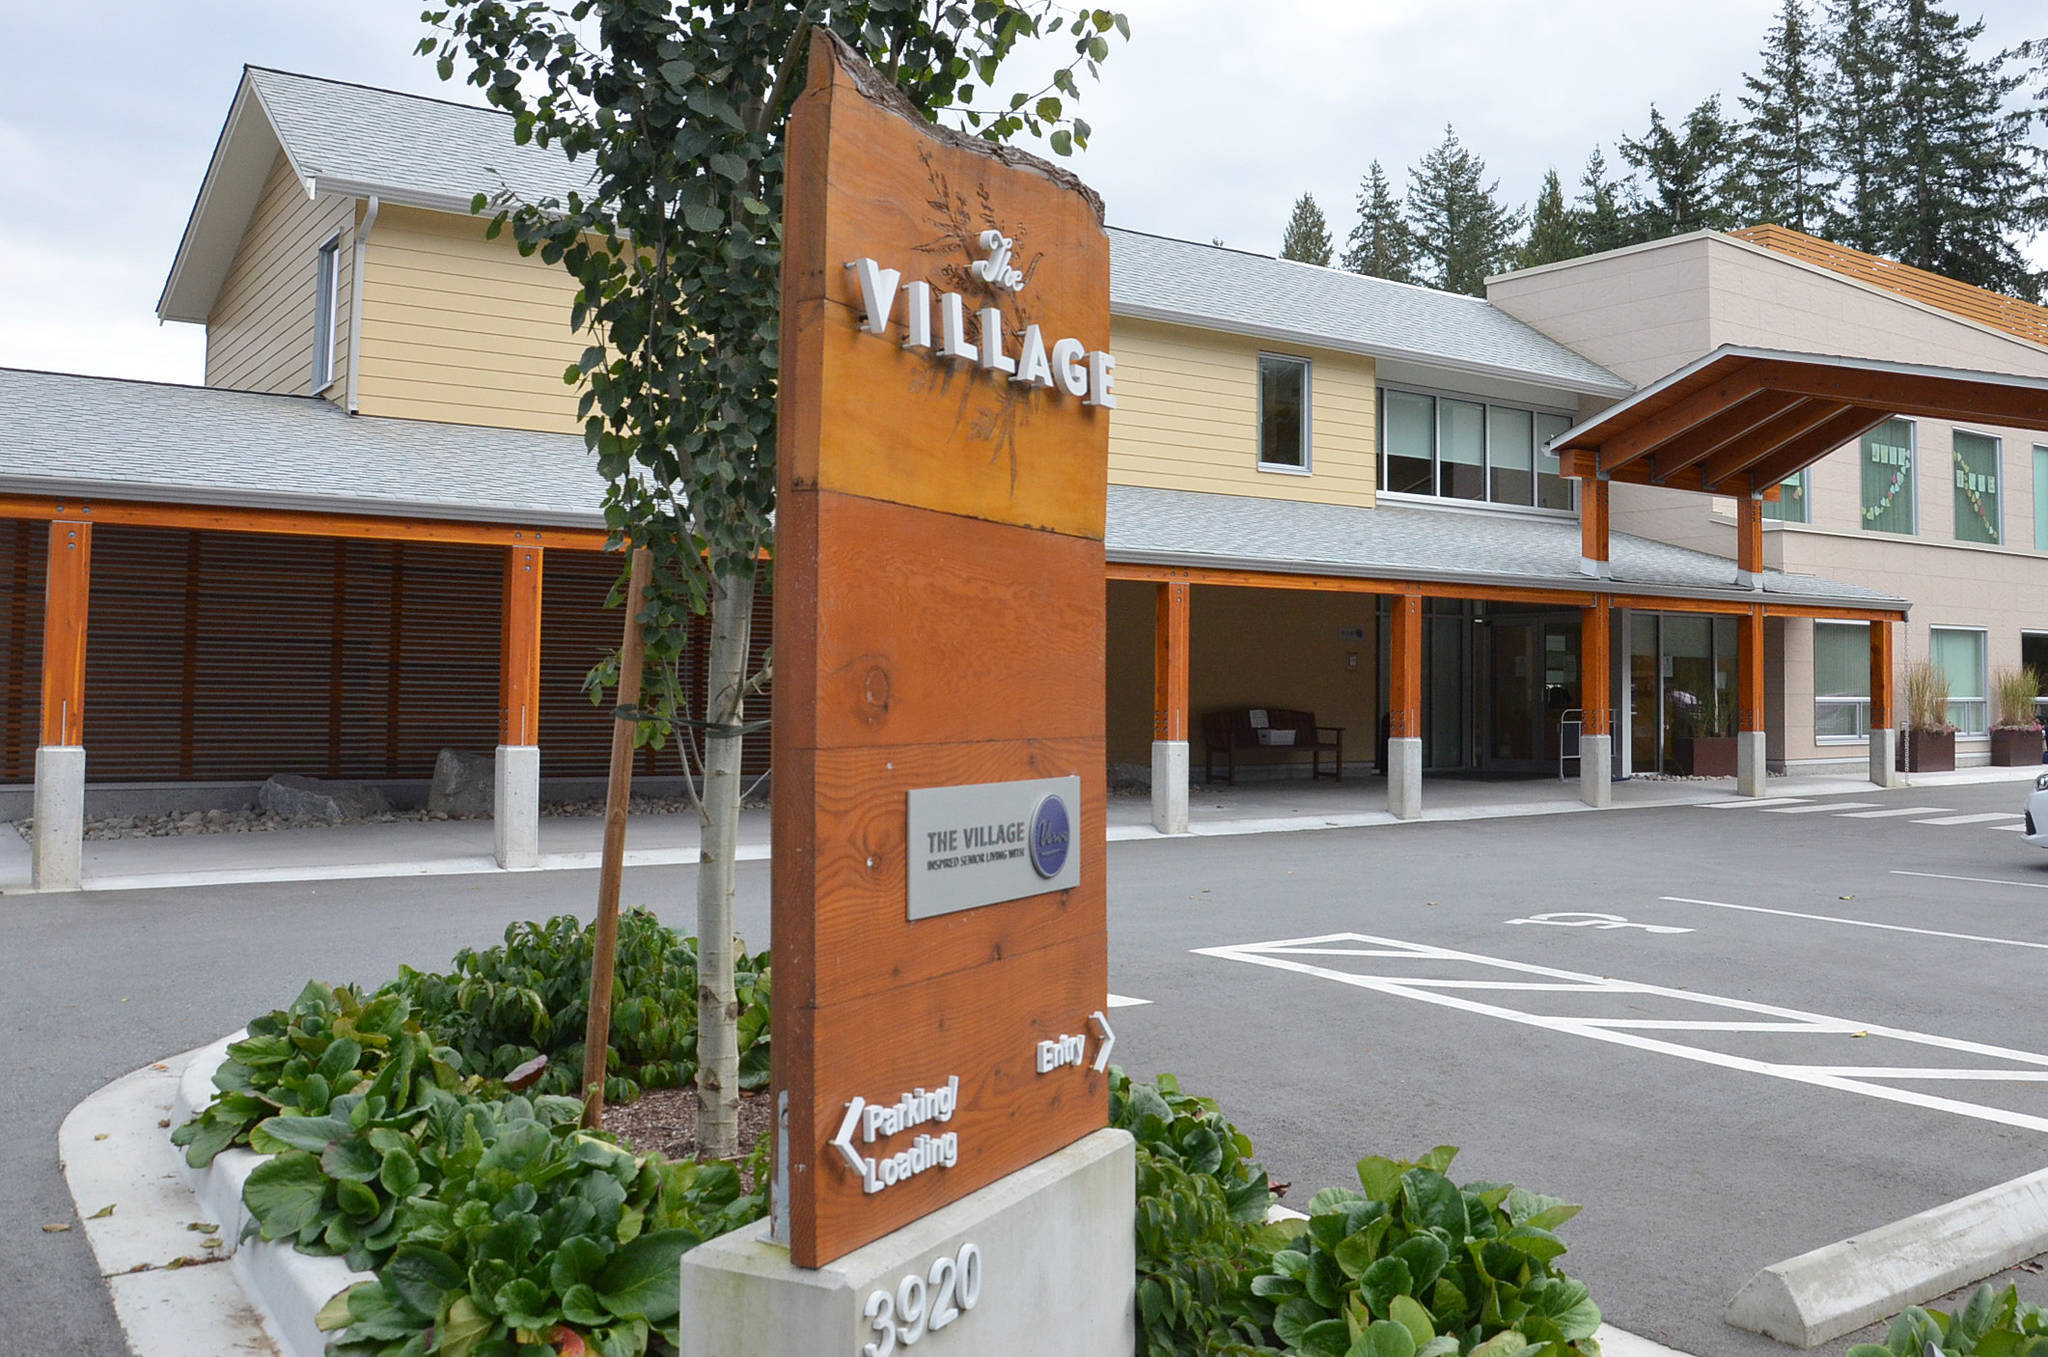 The Village, a secure dementia facility, opened in Brookswood a few years back. It was the subject of a recent COVID outbreak, which was declared over on Oct. 30, 2020. (Heather Colpitts/Langley Advance Times)